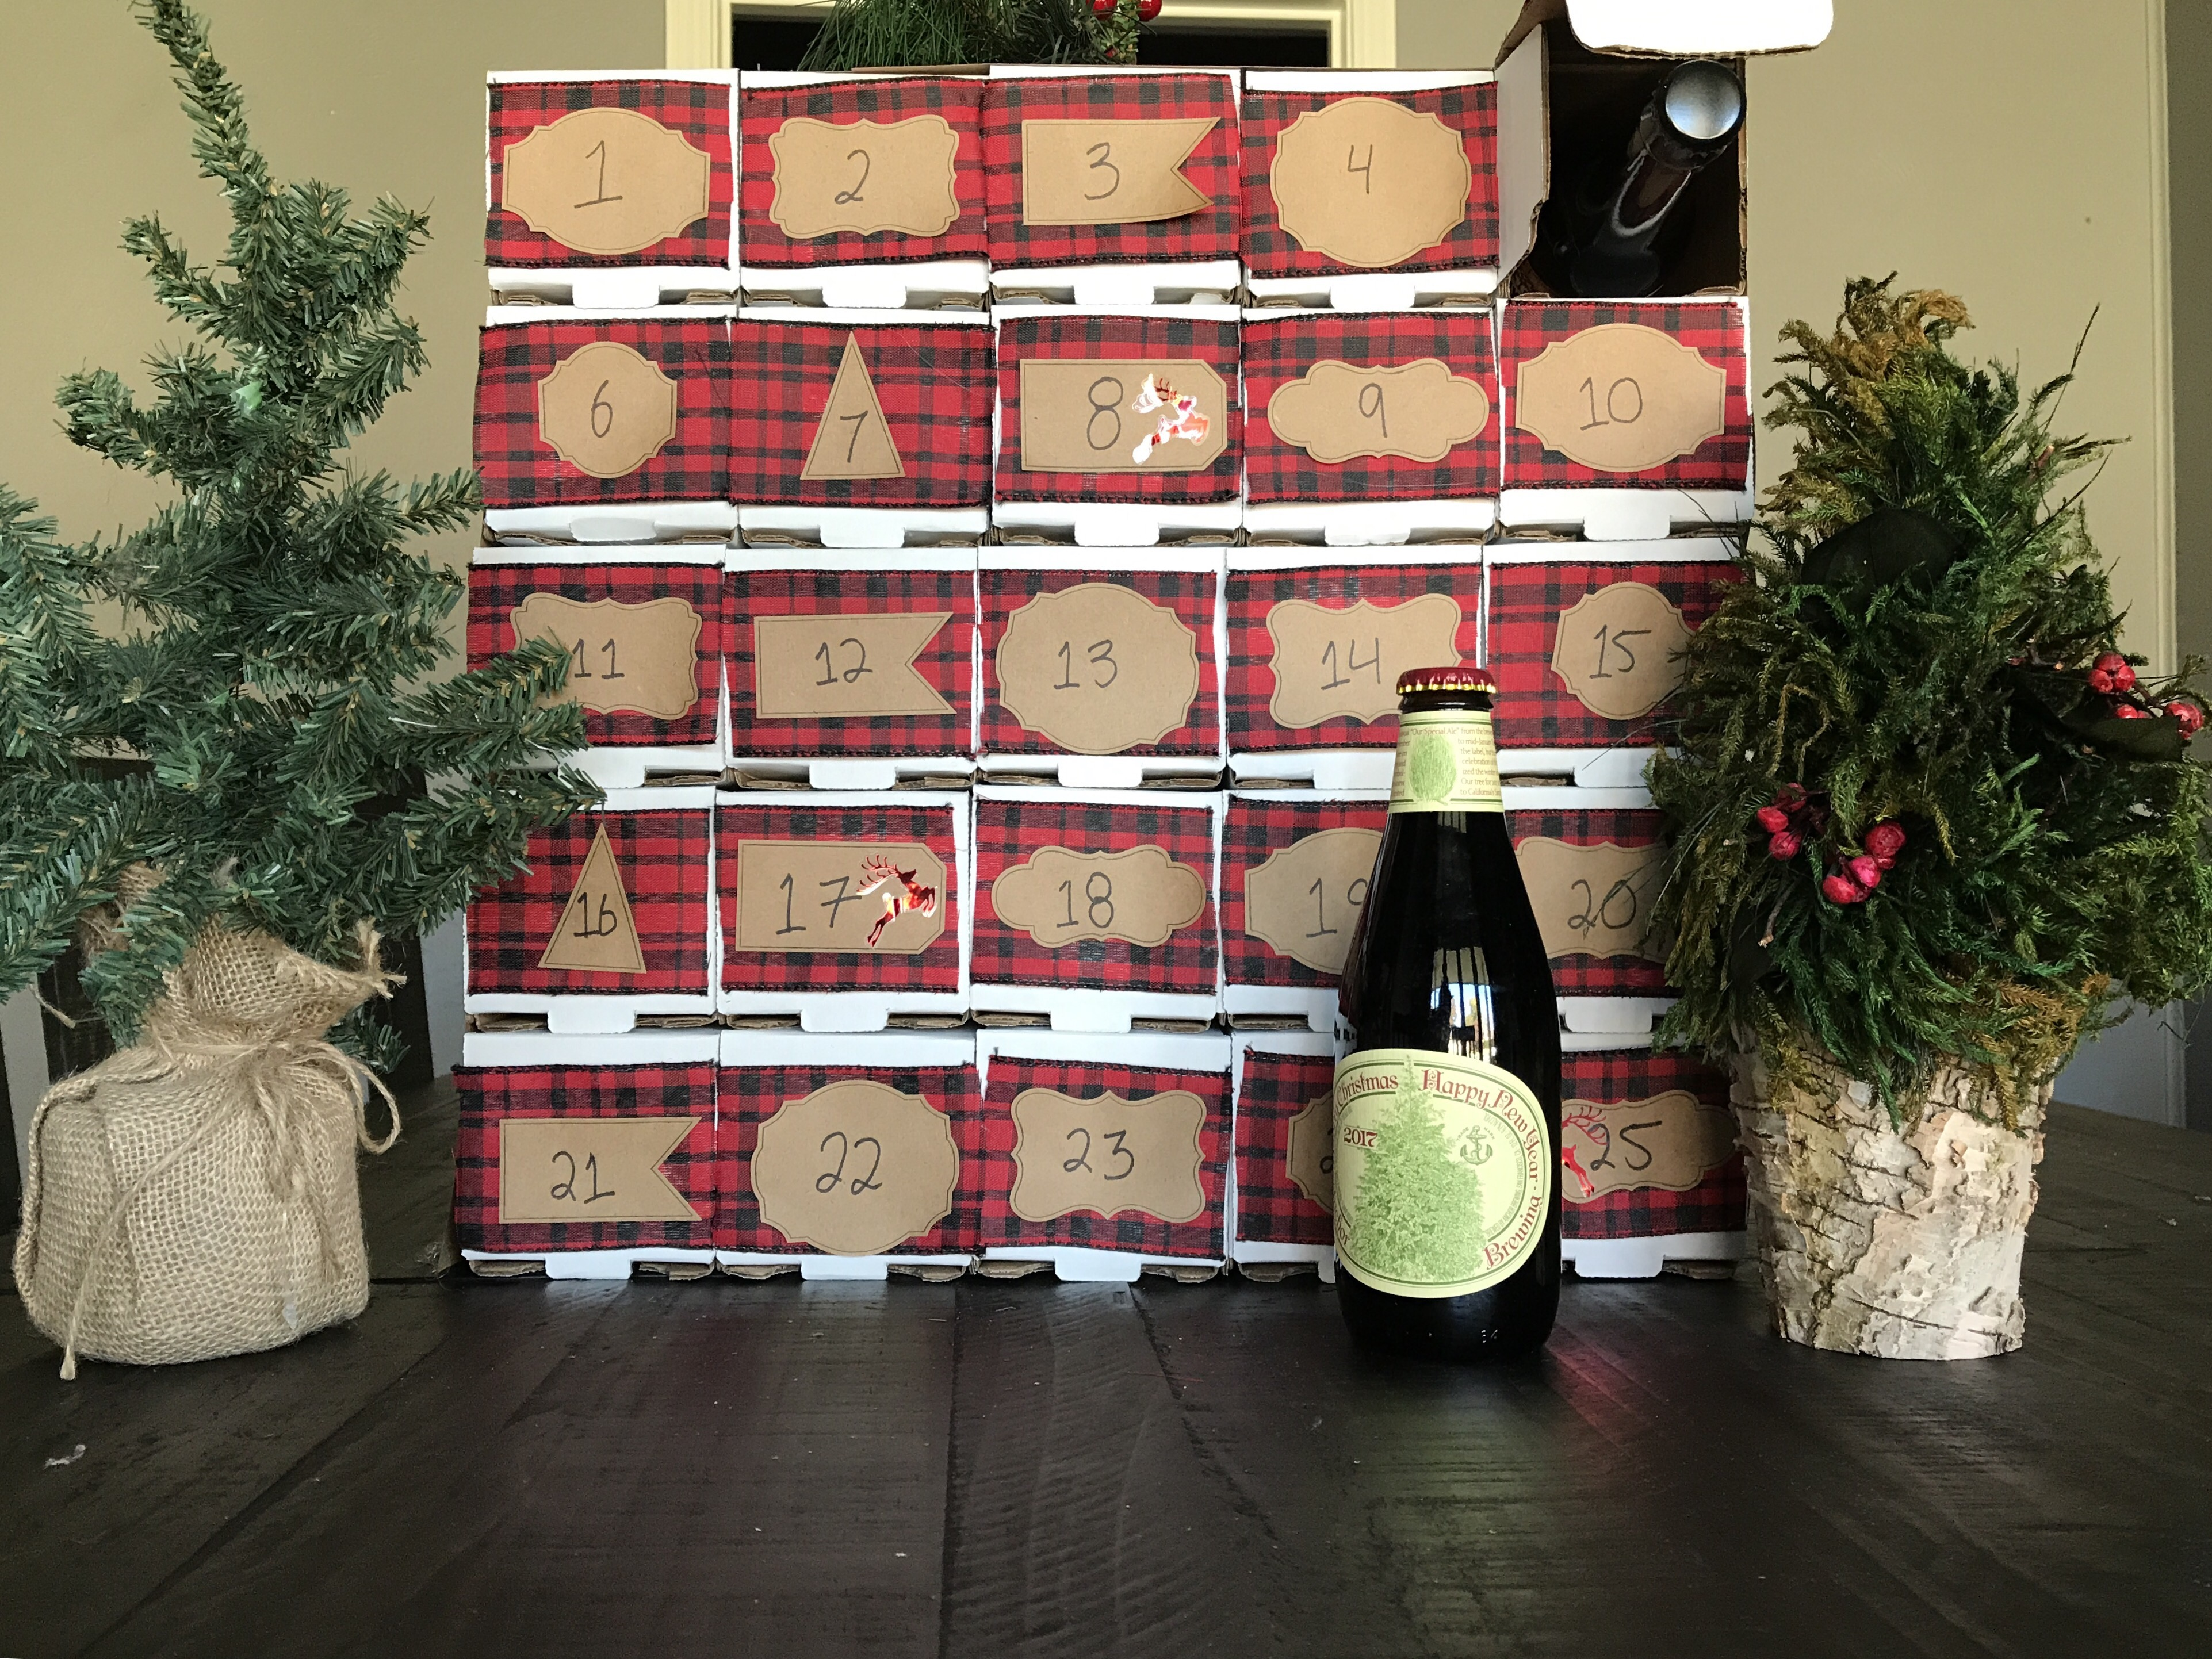 How to make The Beerded Lady's Advent Calendar